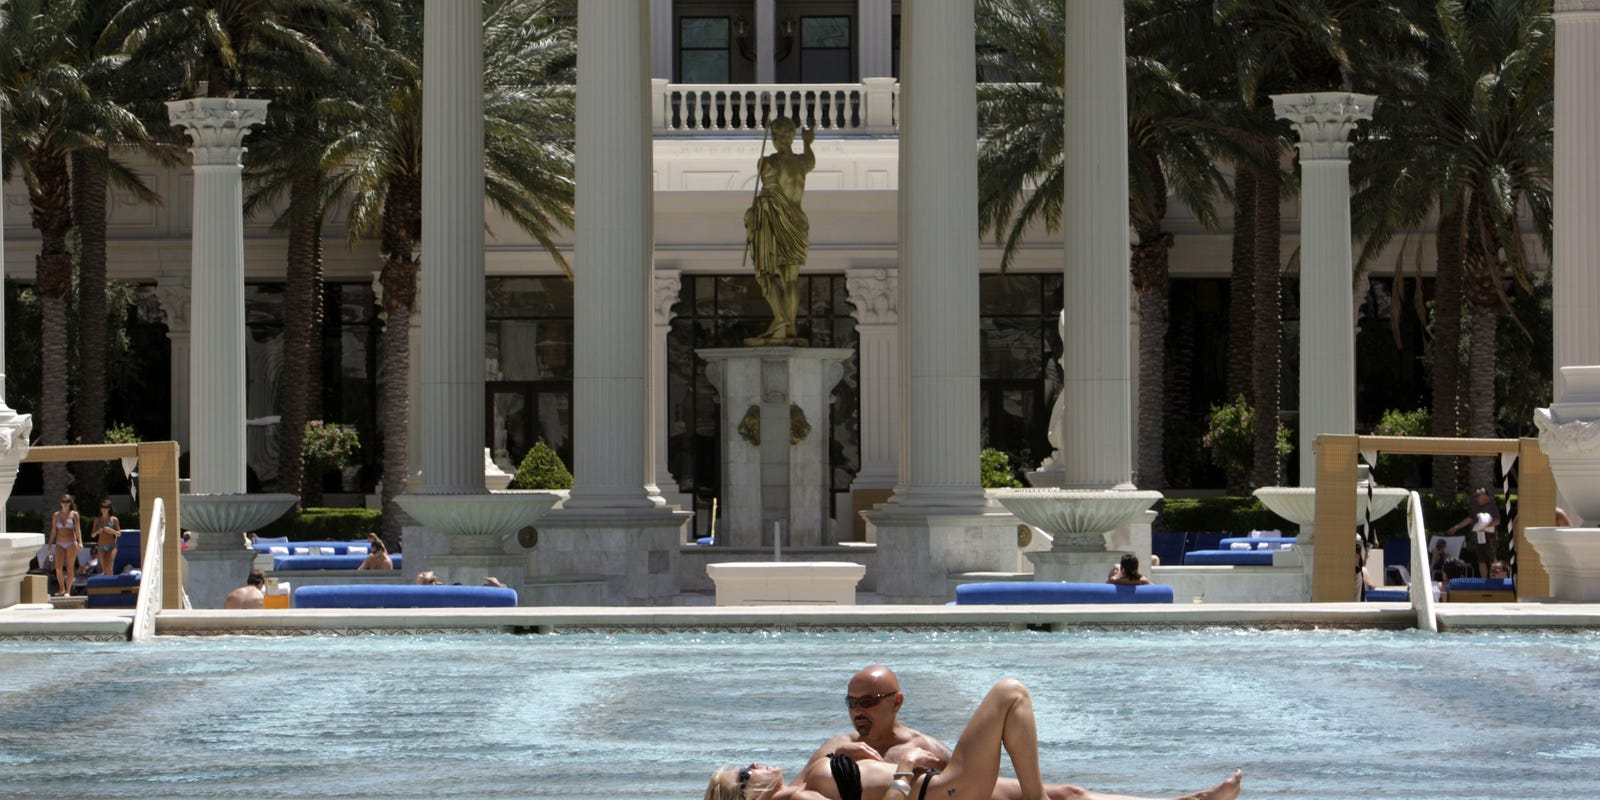 Vegas adult and topless pools continue to make a splash